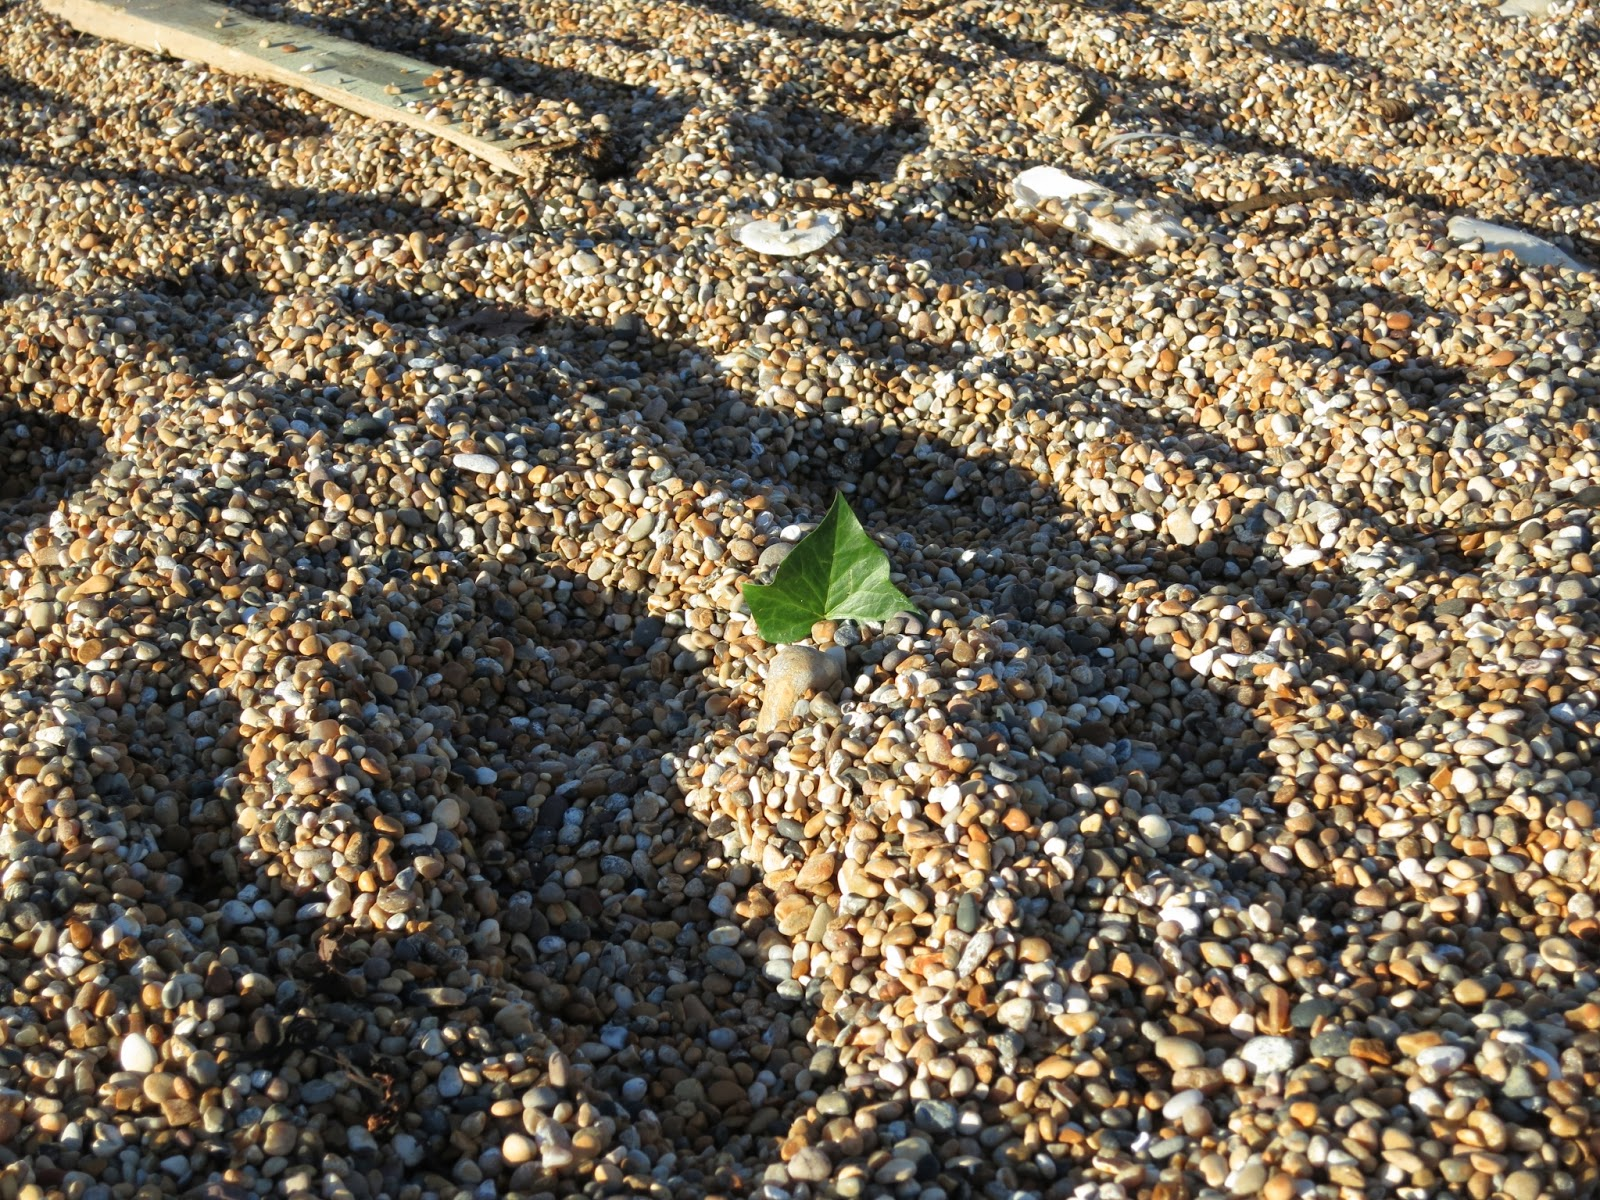 One ivy leaf sticking out of pebbles at West Bay, Dorset